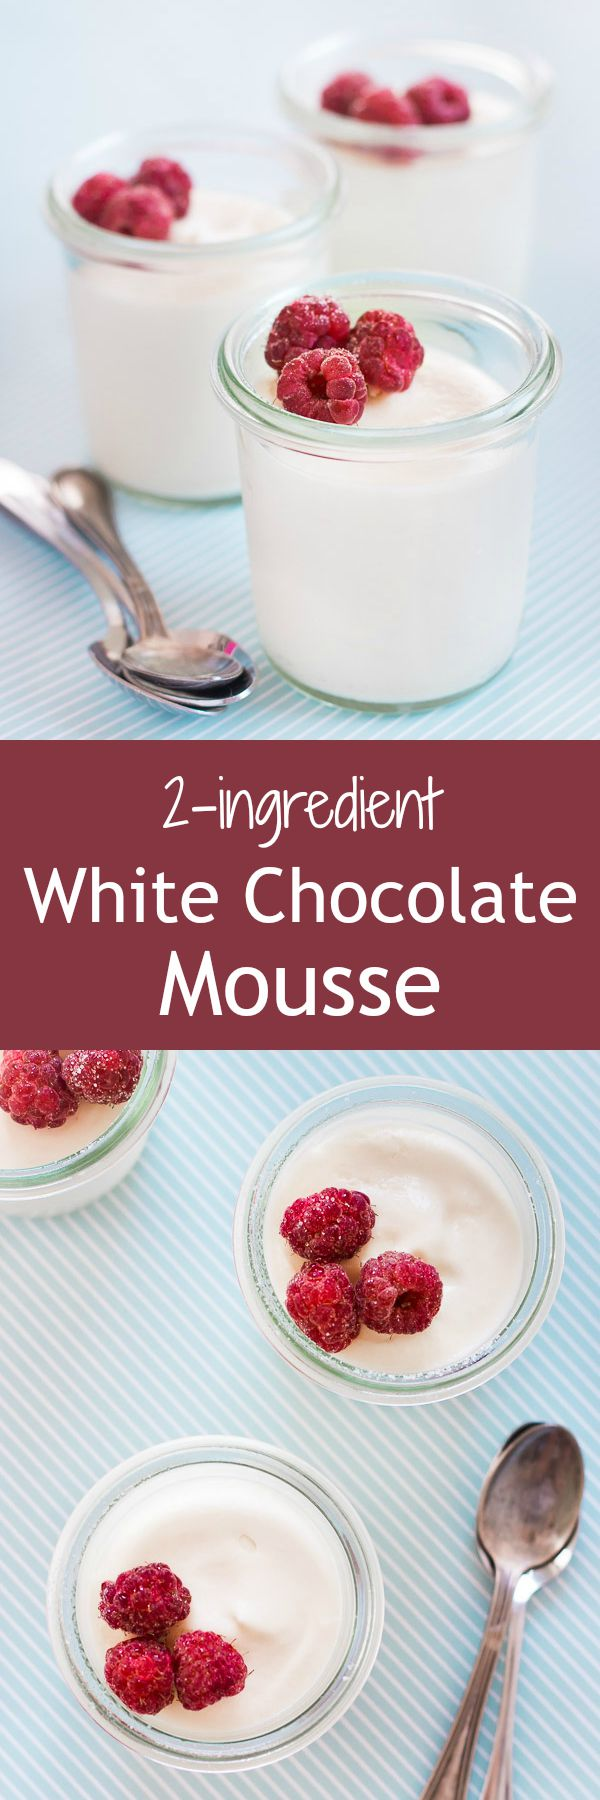 Creamy and light white chocolate mousse made easy with only 2 ingredients!   prettysimplesweet.com